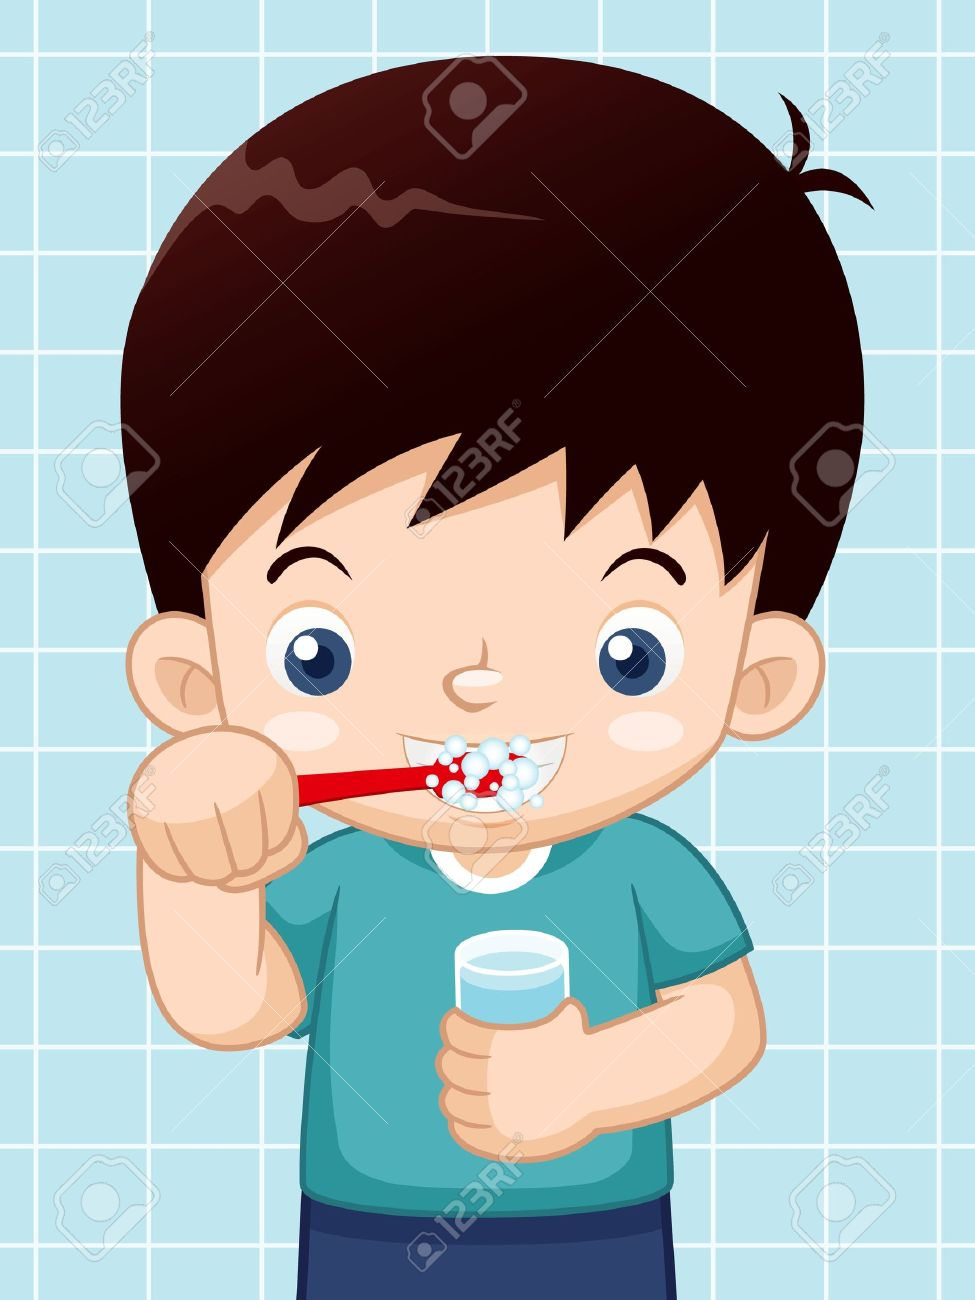 illustration of boy brushing his teeth royalty free cliparts